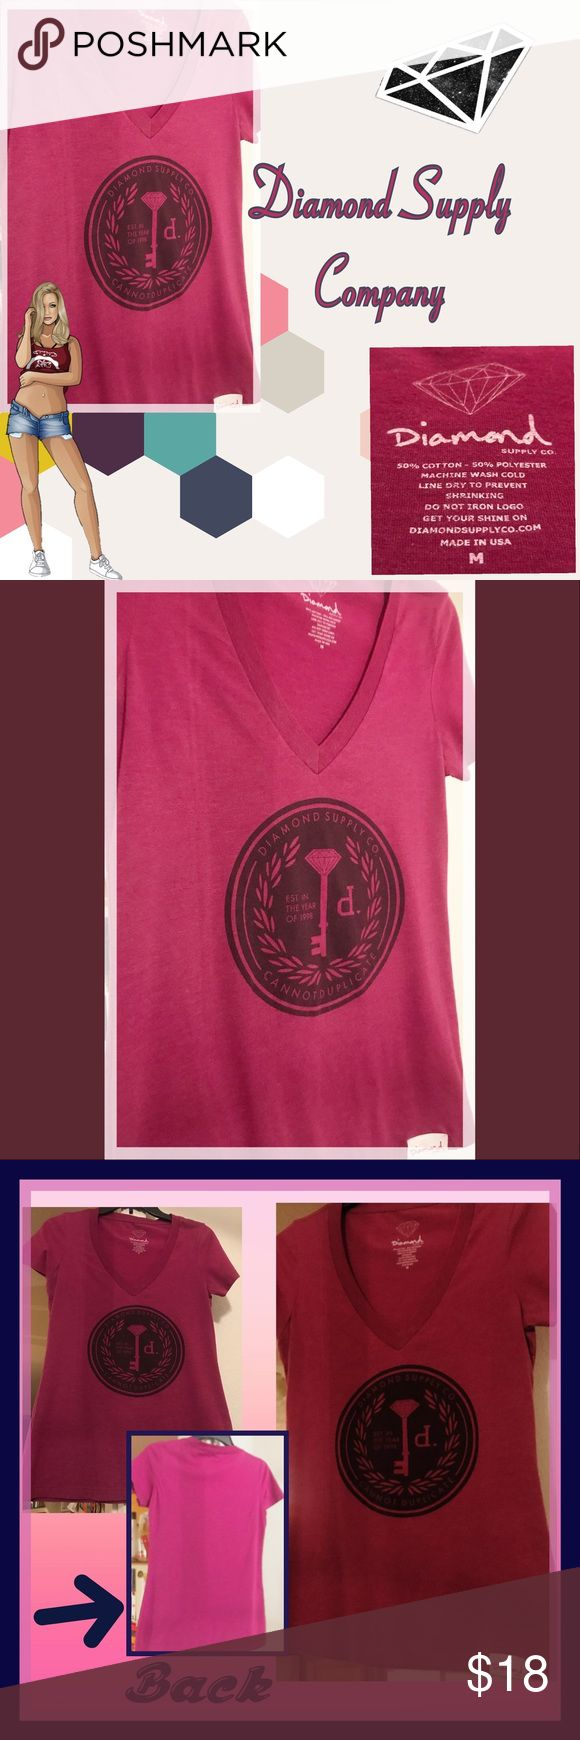 Diamond Supply Tee Gorgeous pop of color in this bright Raspberry/Magenta tee!  Diamond Supply Company logo on front; Deep V-Neck; Excellent Pre-loved condition Diamond Supply Co. Tops Tees - Short Sleeve